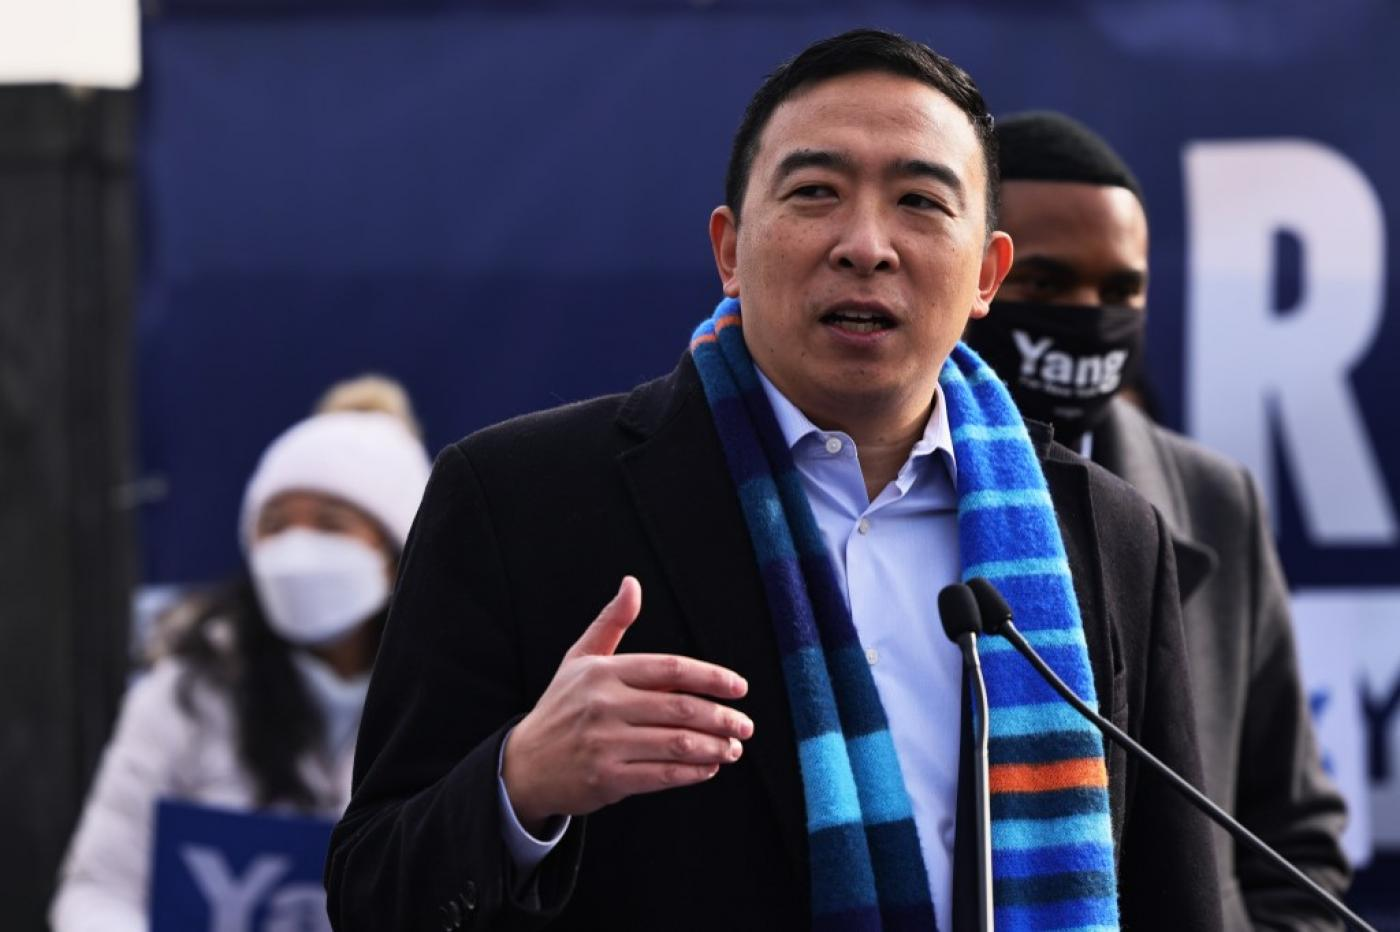 NYC Mayoral Candidate Andrew Yang Stands With Israel Amidst Ongoing Attacks